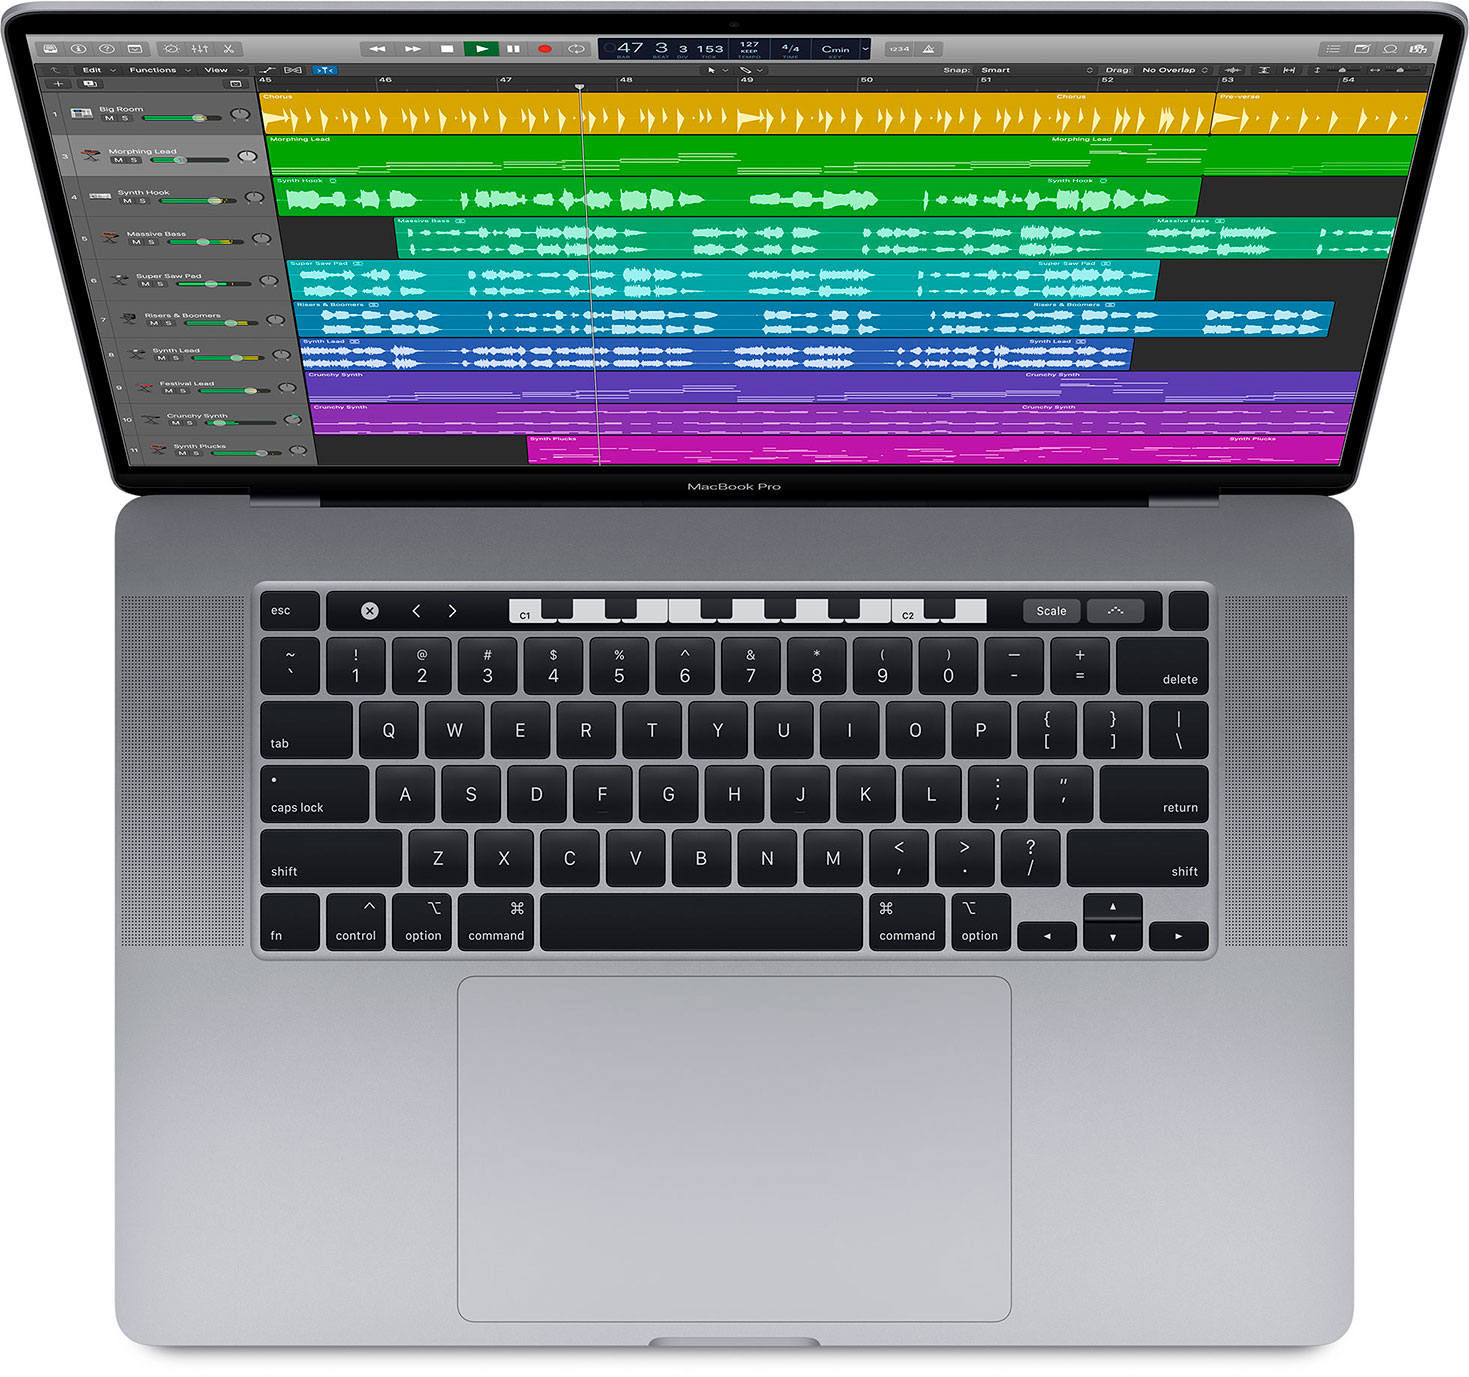 https://www.macfreak.nl/modules/news/images/zArt.16-inchMacBookProLogicProX.jpg